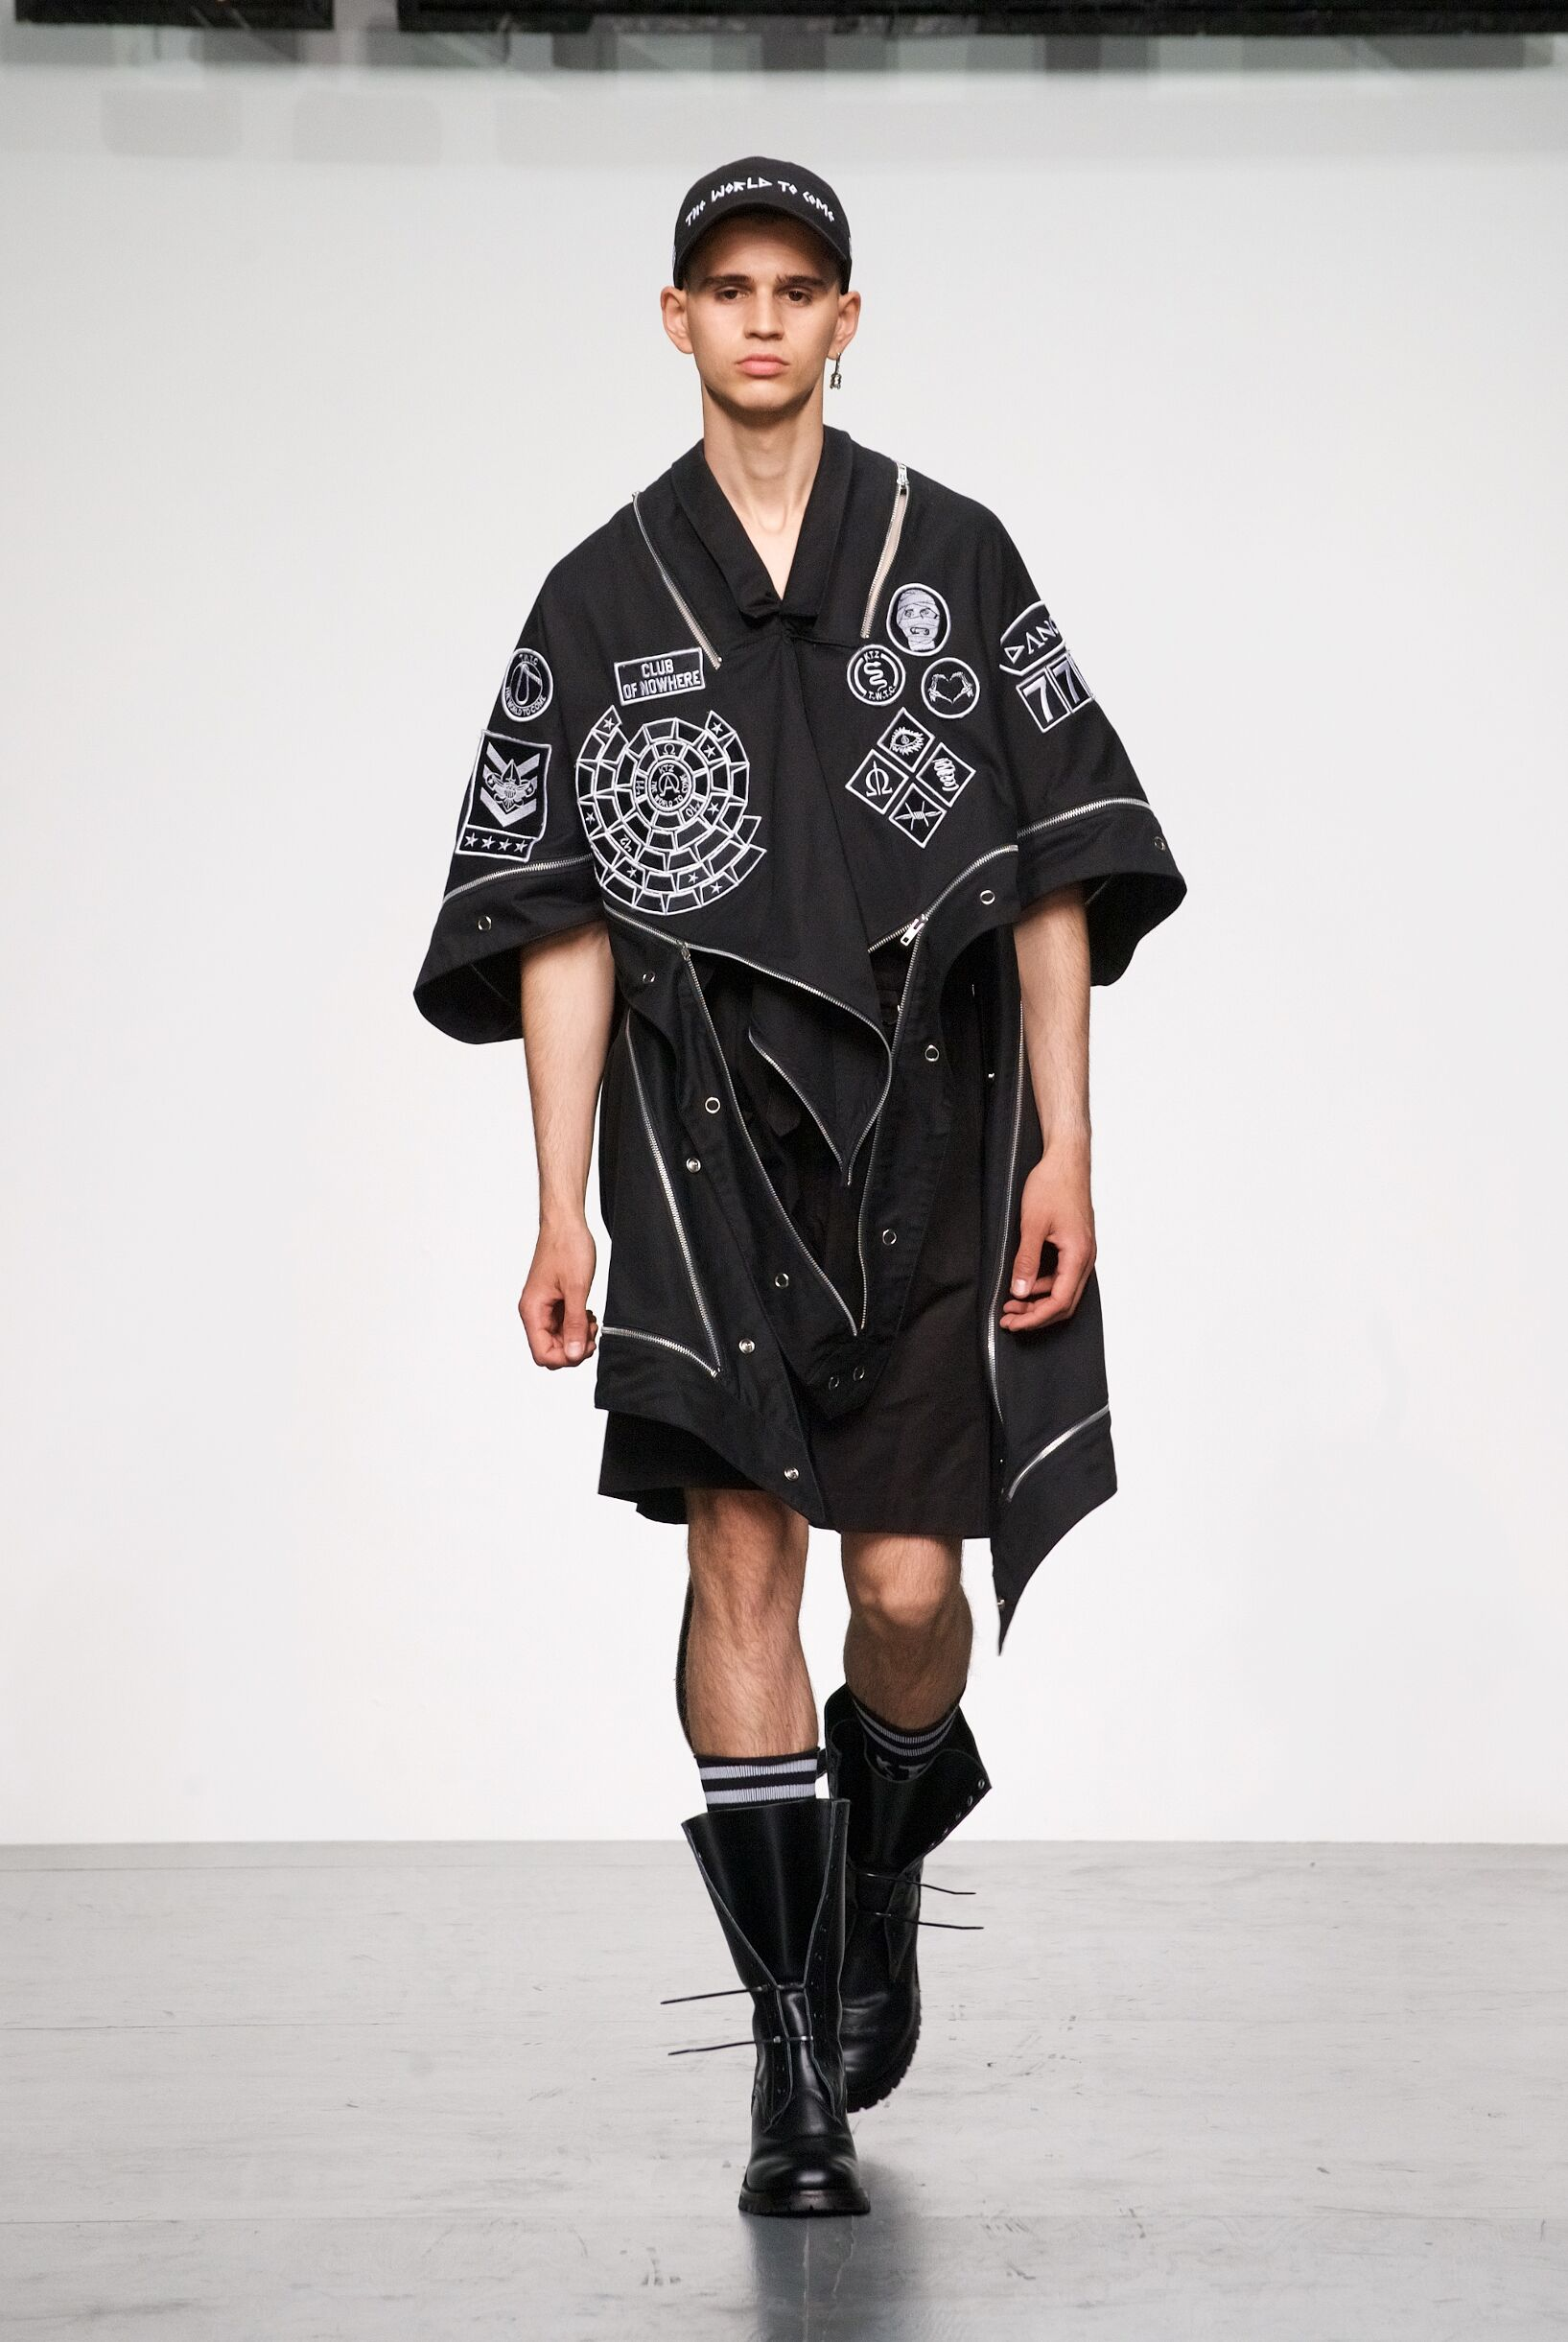 Summer 2018 Man Trends KTZ